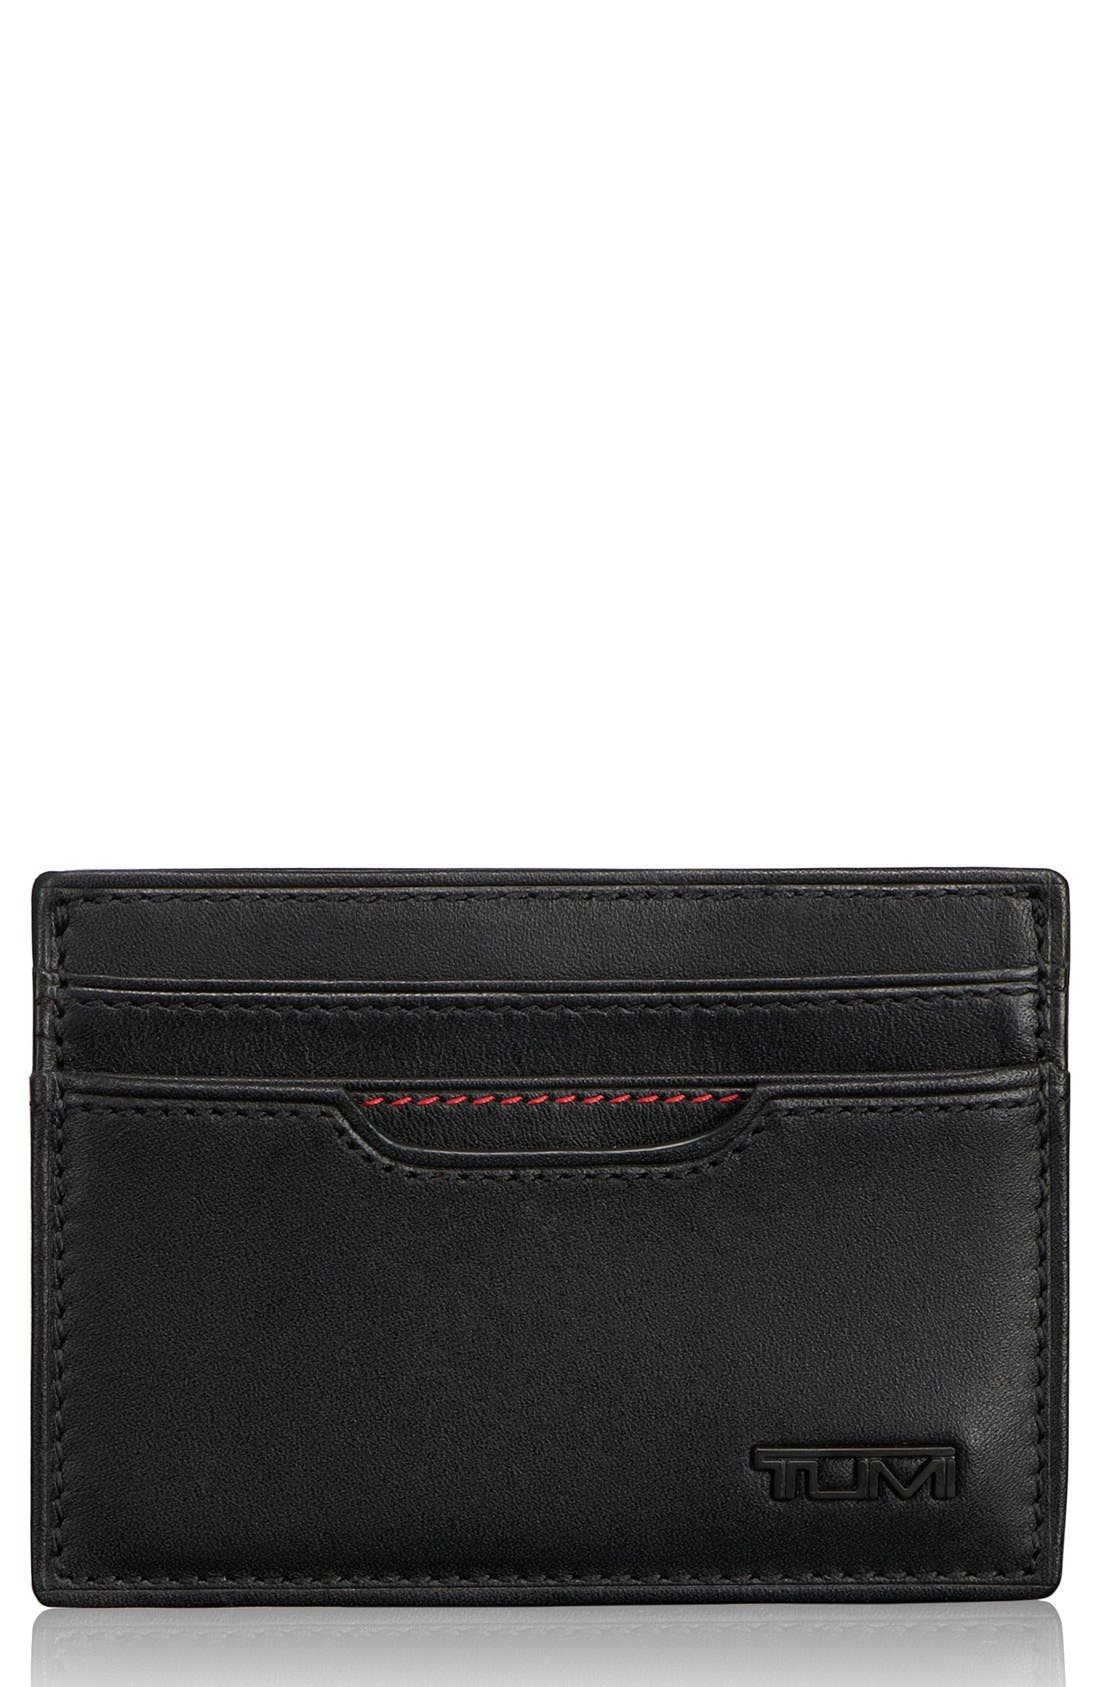 TUMI Delta - ID Lock<sup>™</sup> Shielded Money Clip Card Case